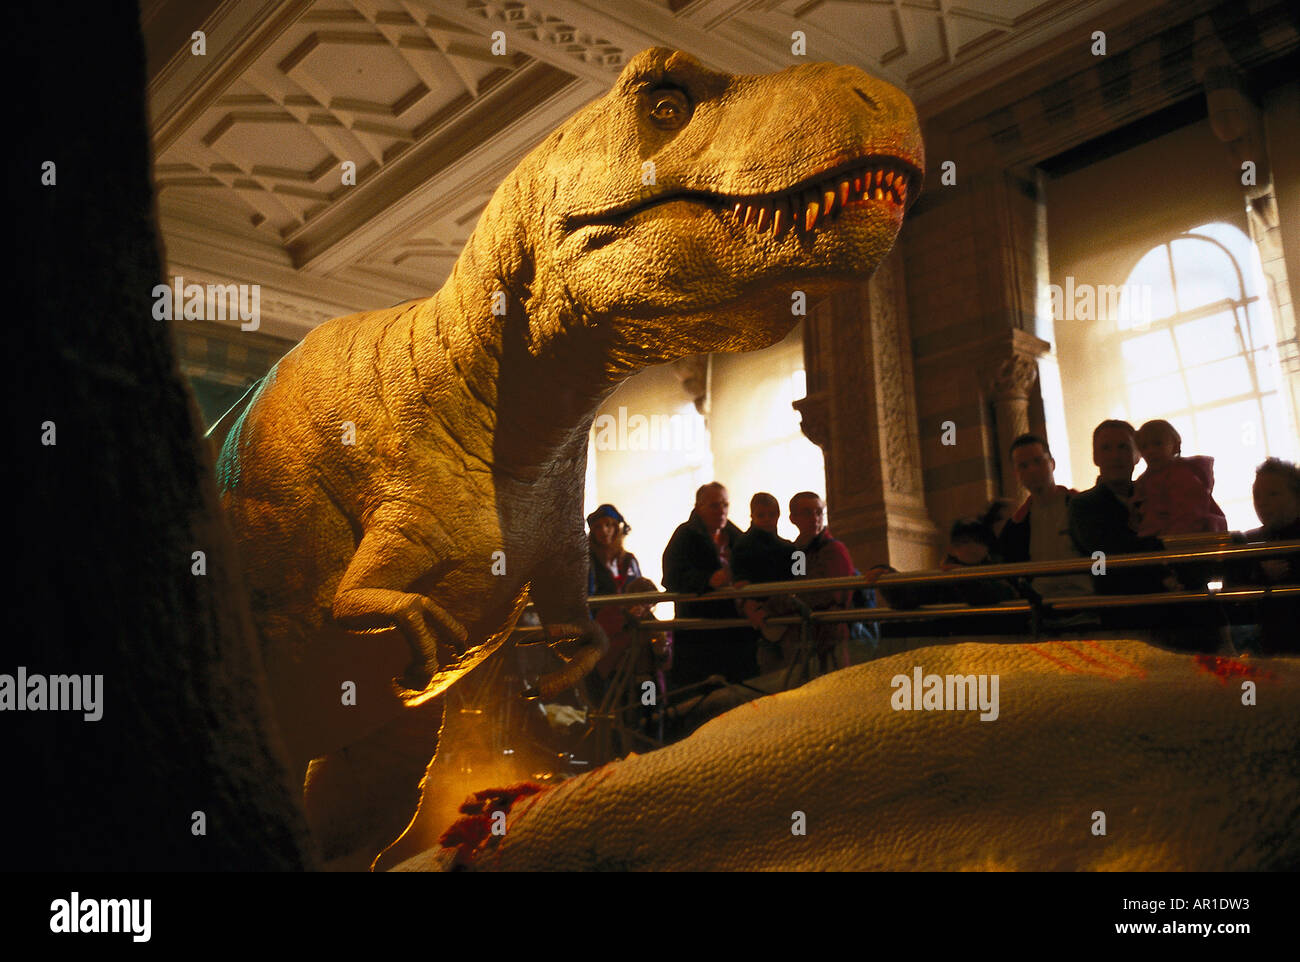 Natural History Museum, Dinosaur Exhibition London, United Kingdom - Stock Image